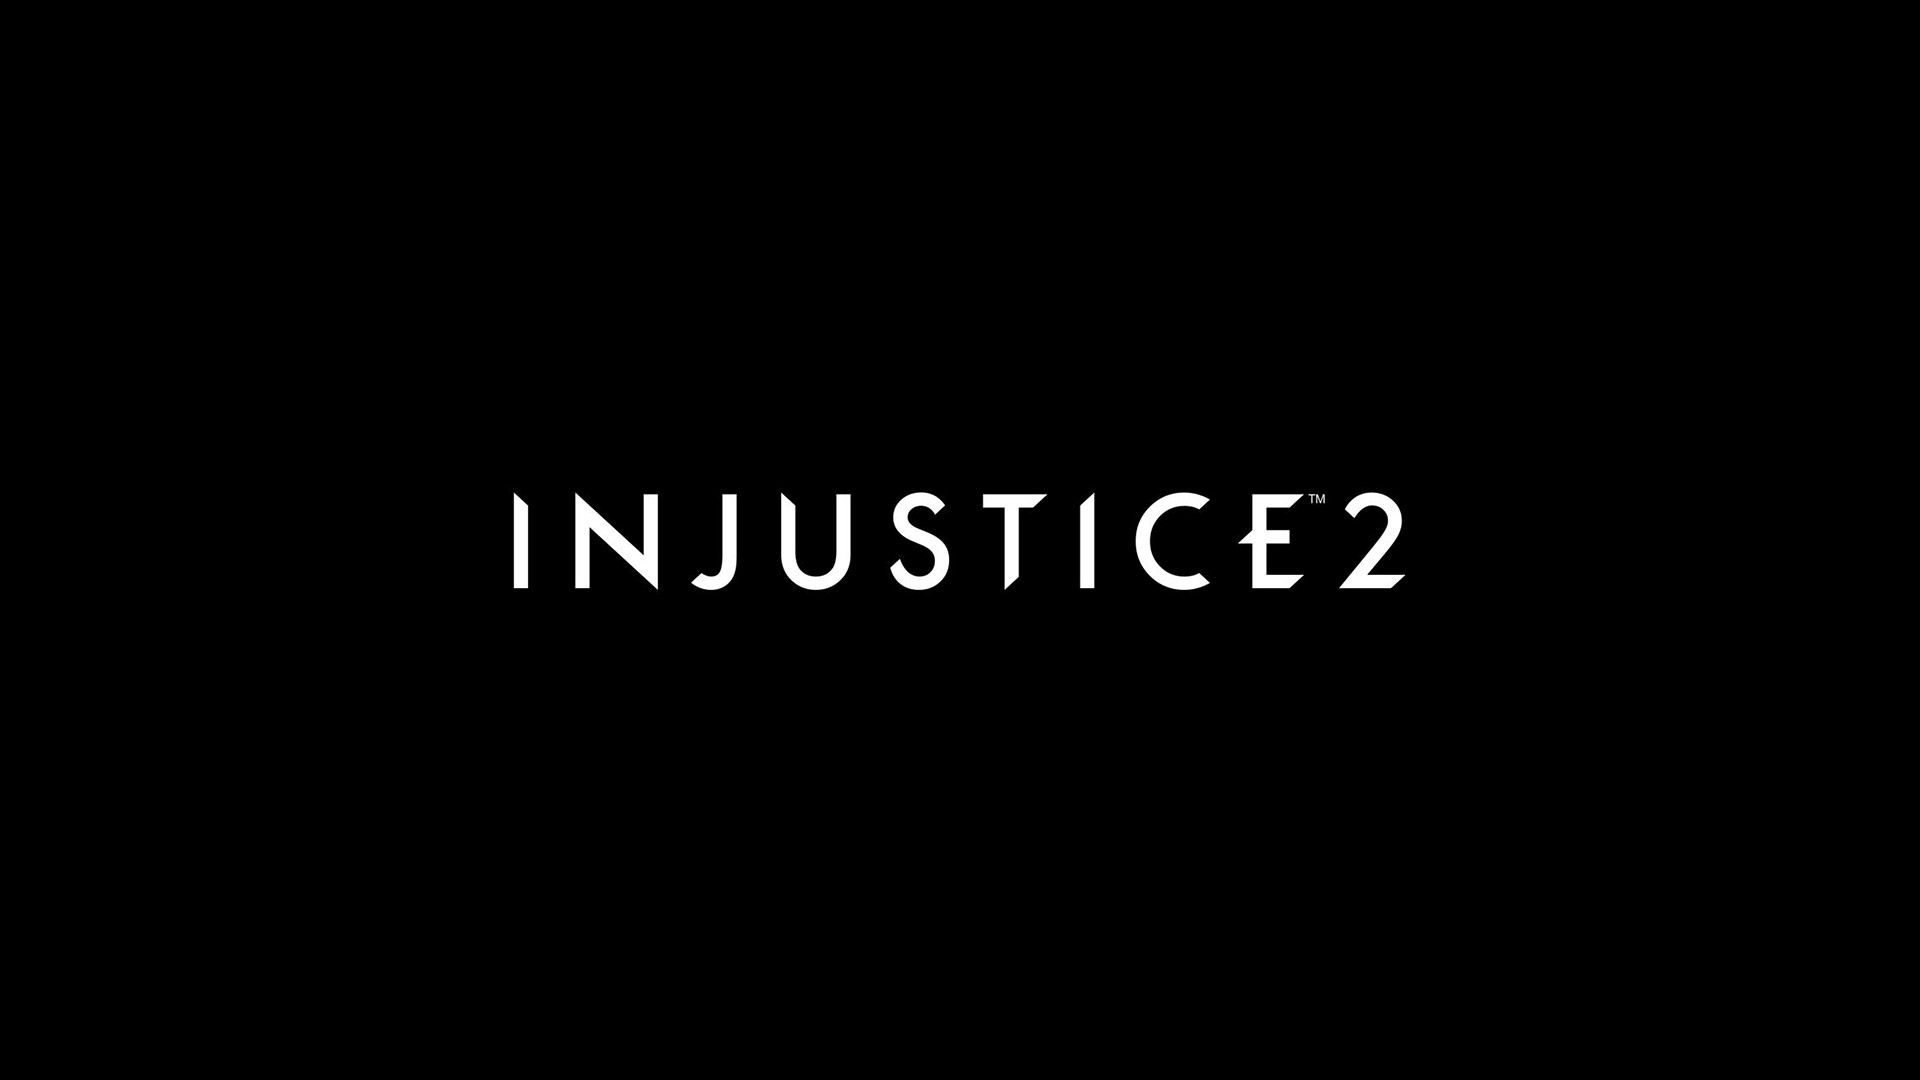 Injustice 2 Review Playstation Lifestyle Ps4 Deluxe Edition Our Final Verdict Eyntk